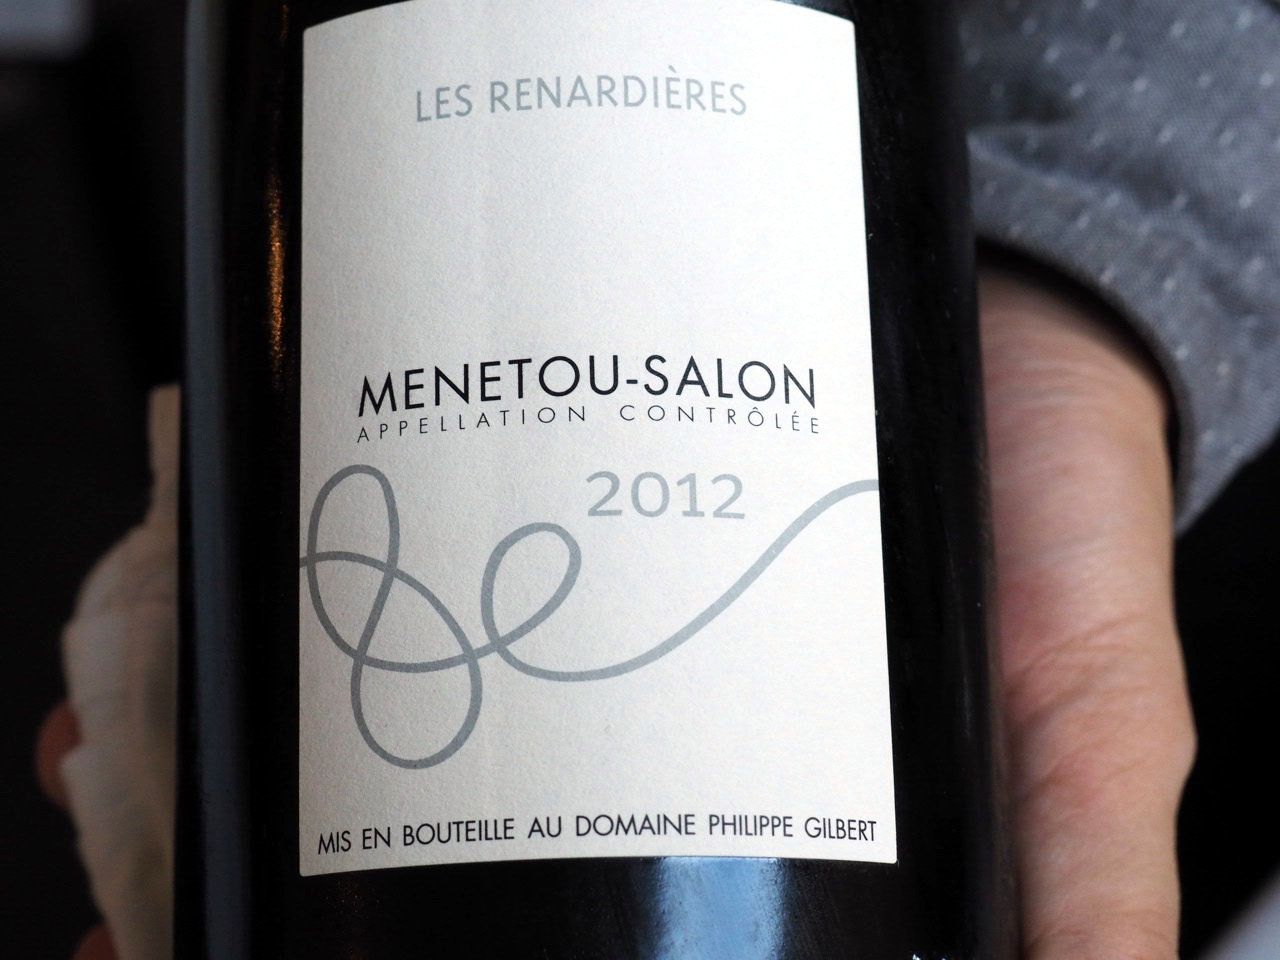 S l 39 auberge du 15 for Menetou salon 2012